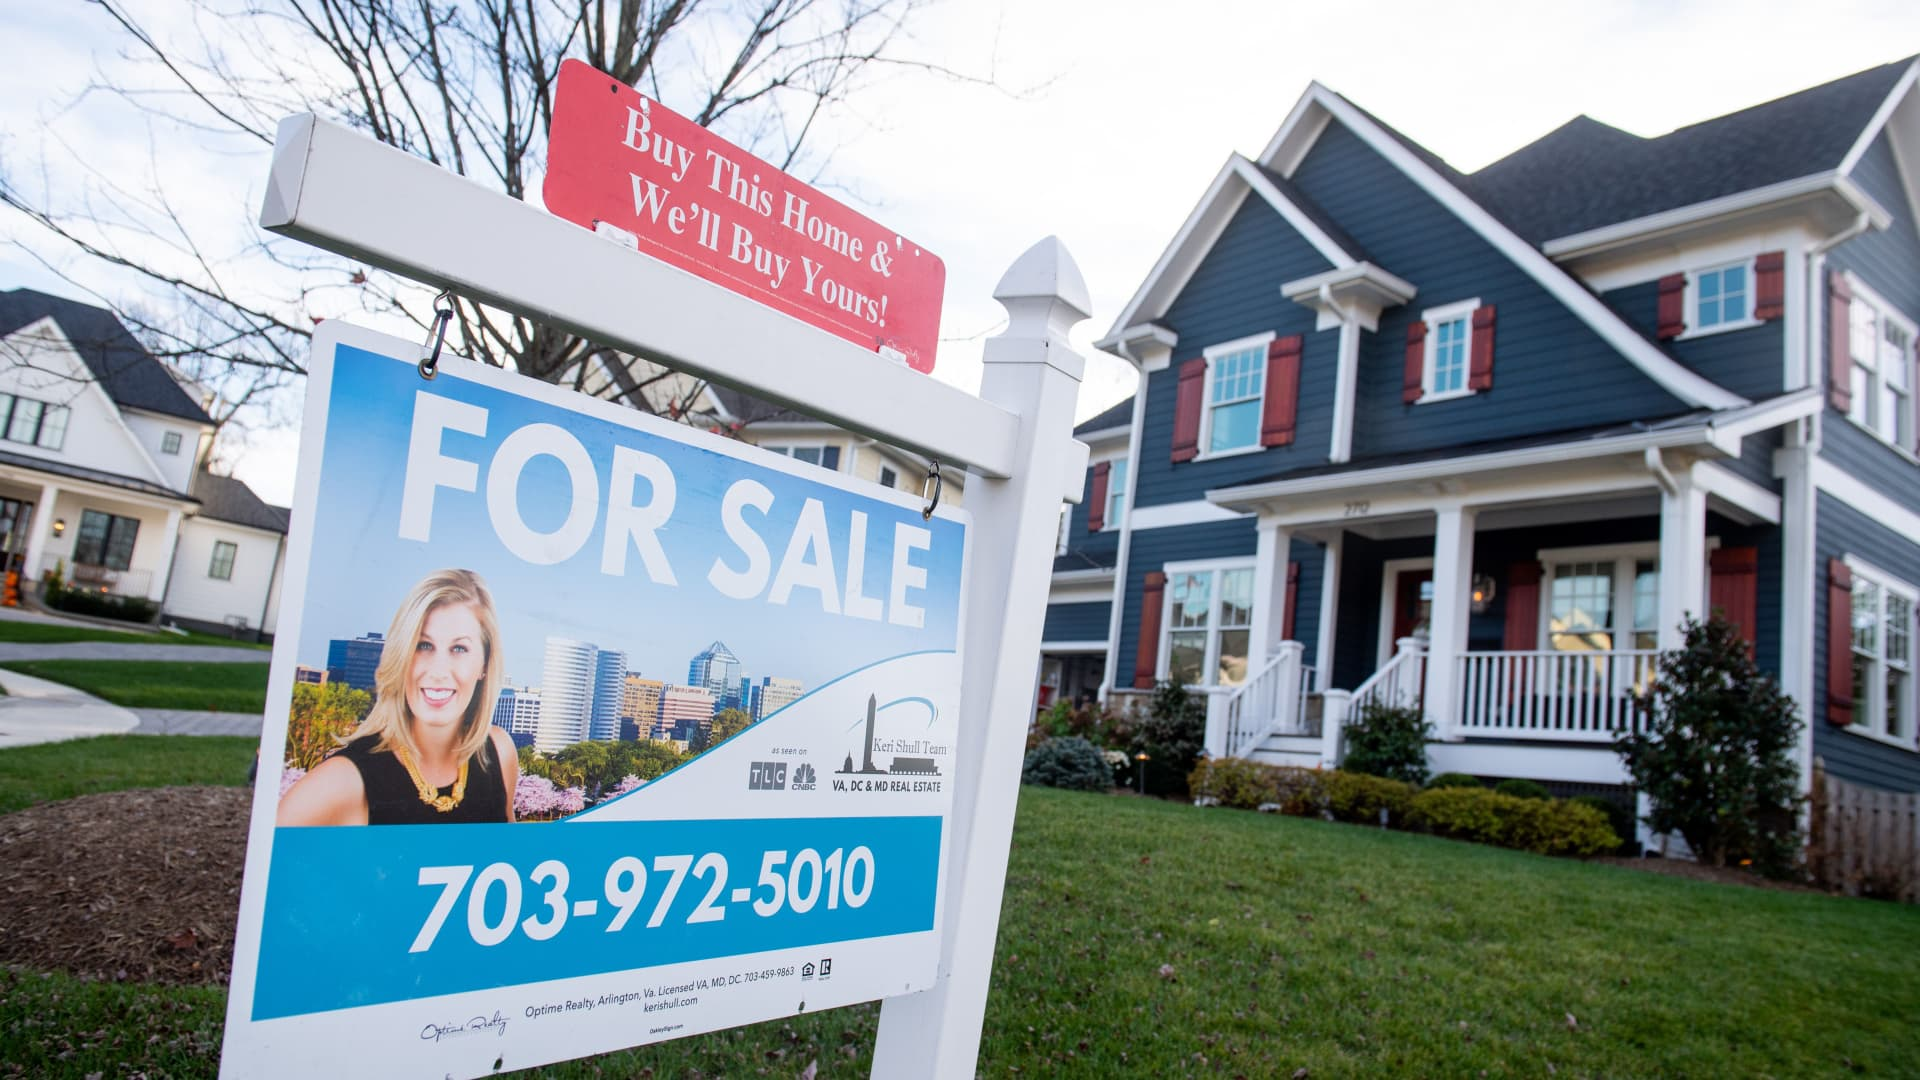 A house's real estate for sale sign is seen in front of a home in Arlington, Virginia, November 19, 2020.